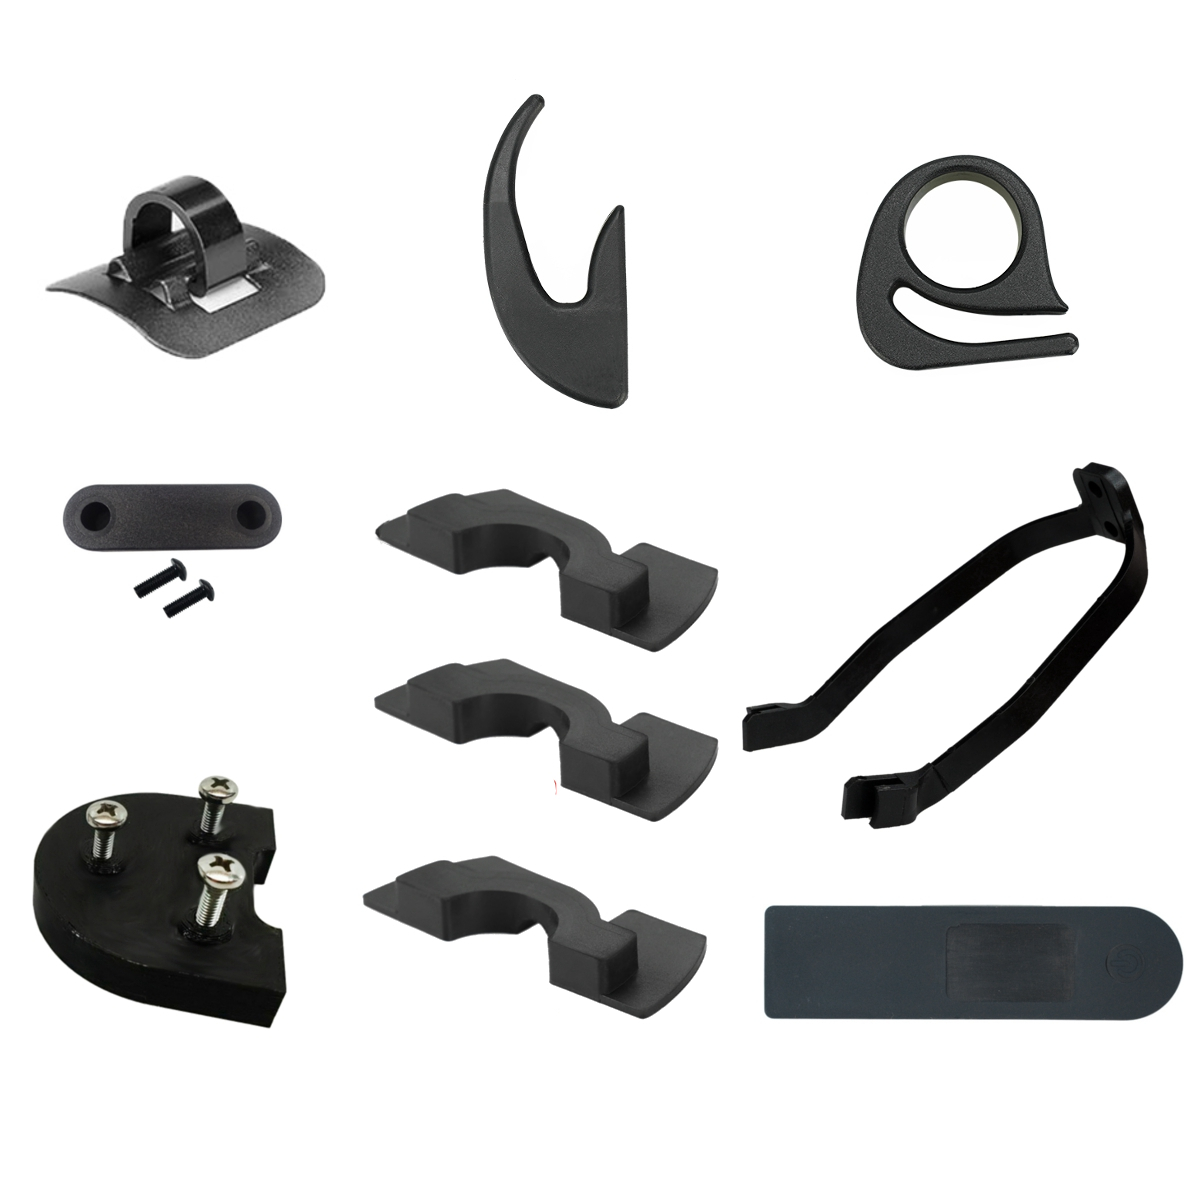 10PSC Red/Black/White Starter Kit  Scooter Accessories For Xiaom